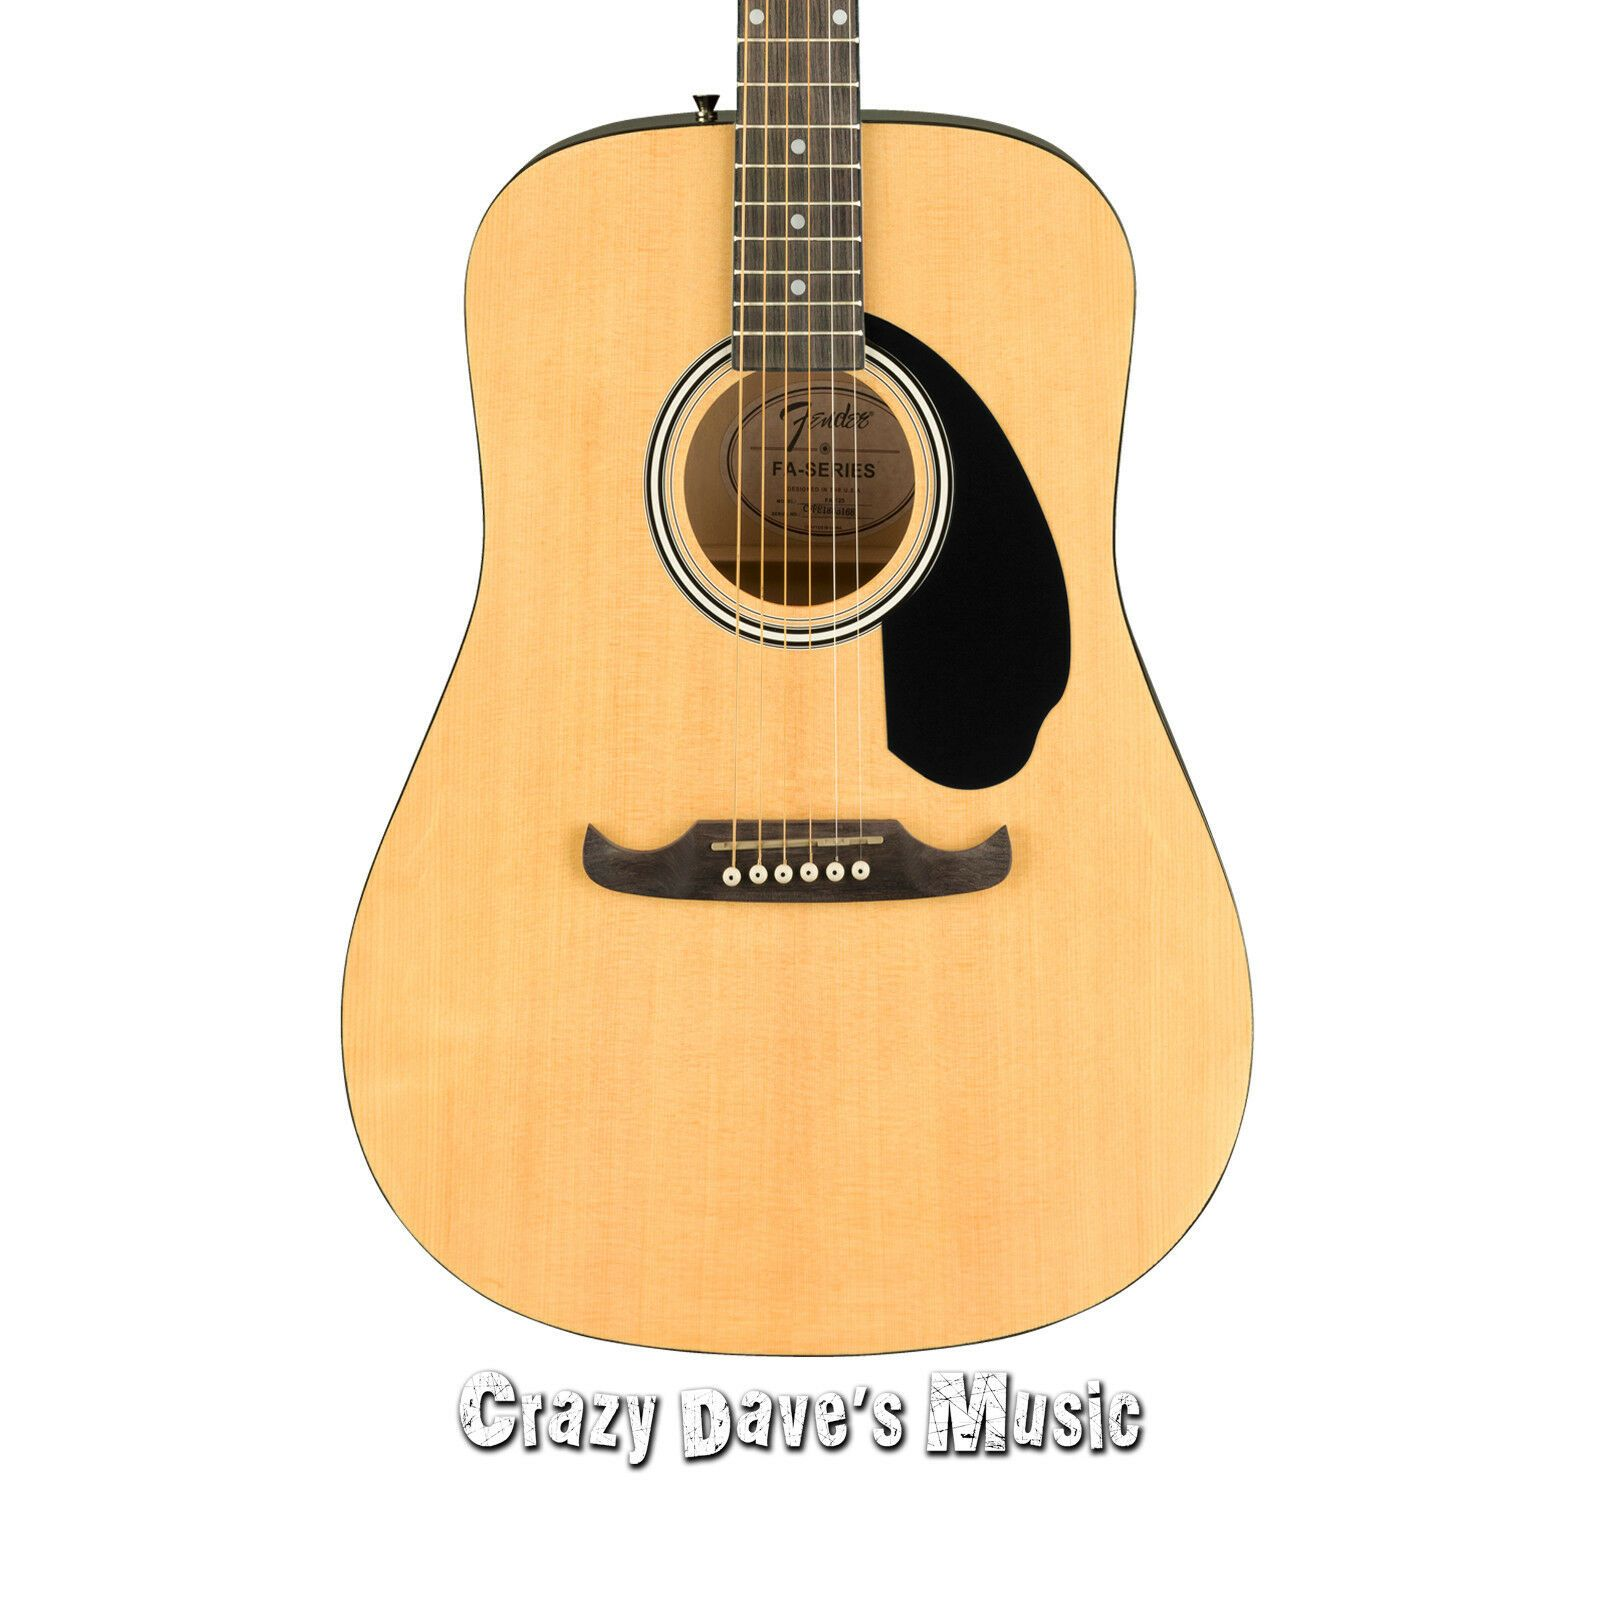 Fender Fa 125 Dreadnought Acoustic Guitar Natural Wtih Gig Bag Ideas Of Acoustic Guitar Acousticguitar In 2020 Guitar Acoustic Guitar Acoustic